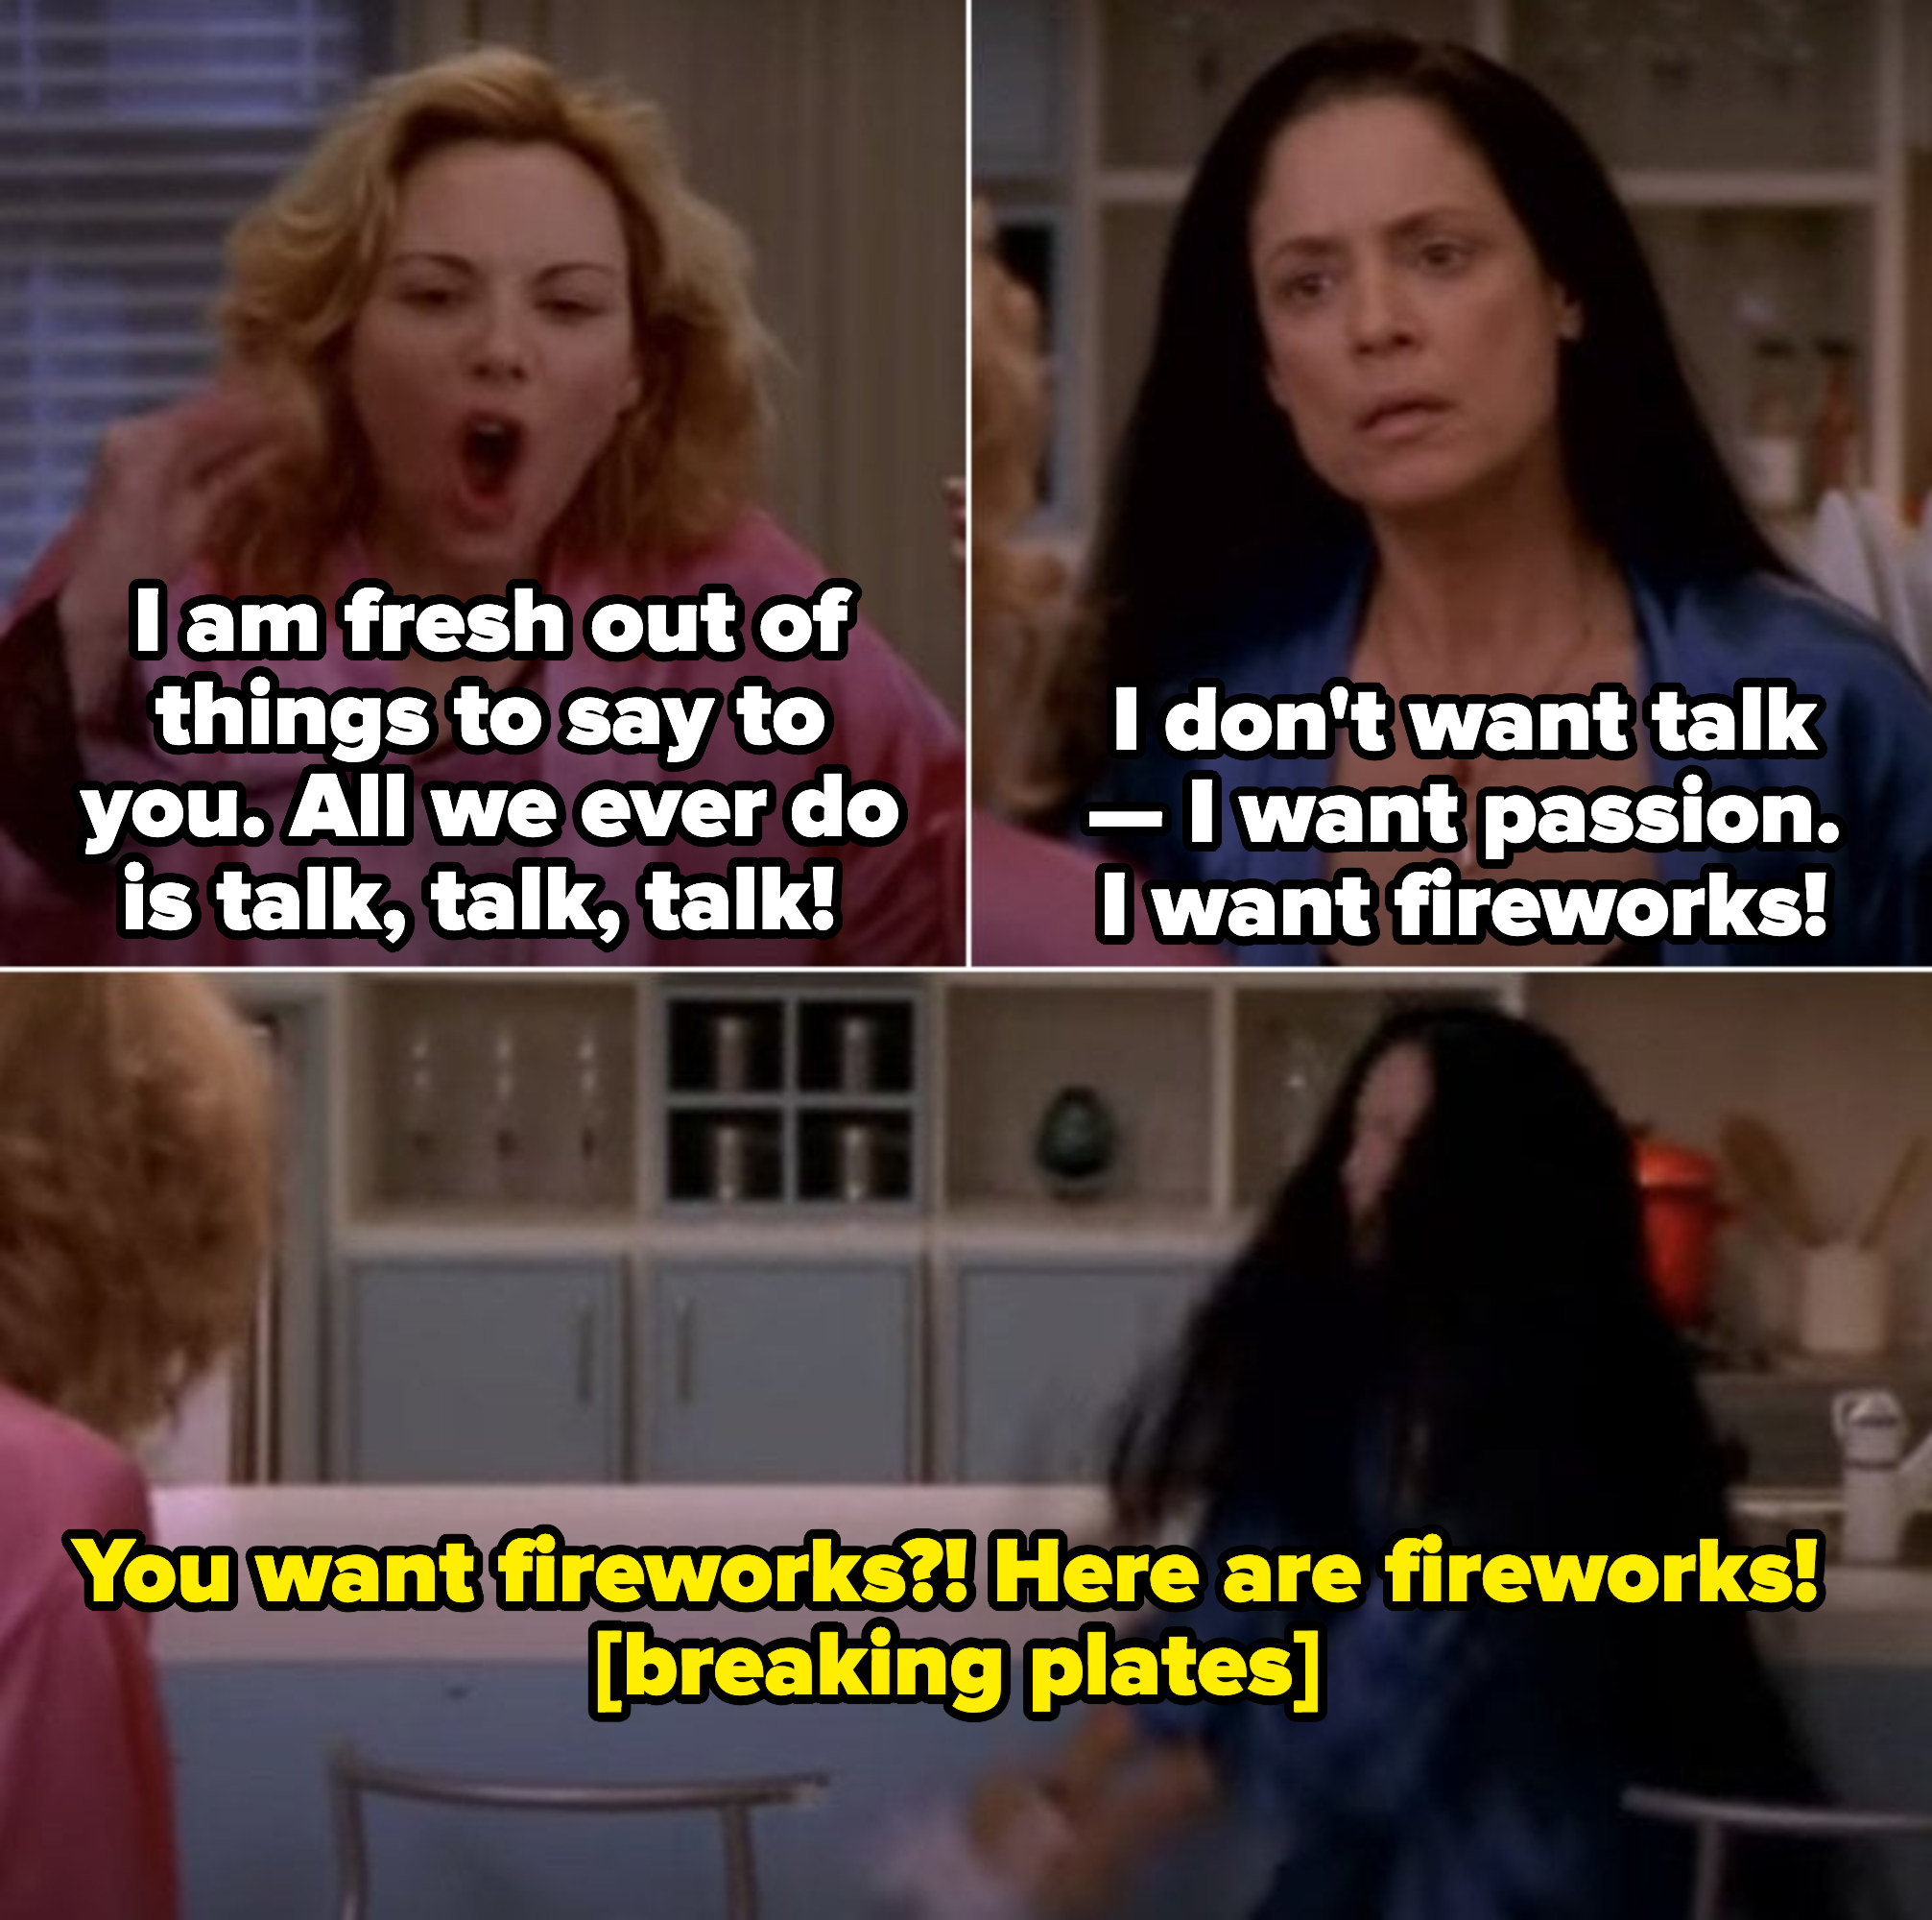 """Samantha: """"I don't want talk -- I want passion. I want fireworks!"""" Maria: You want fireworks?! Here are fireworks!"""" Maria breaks Samantha's plates"""